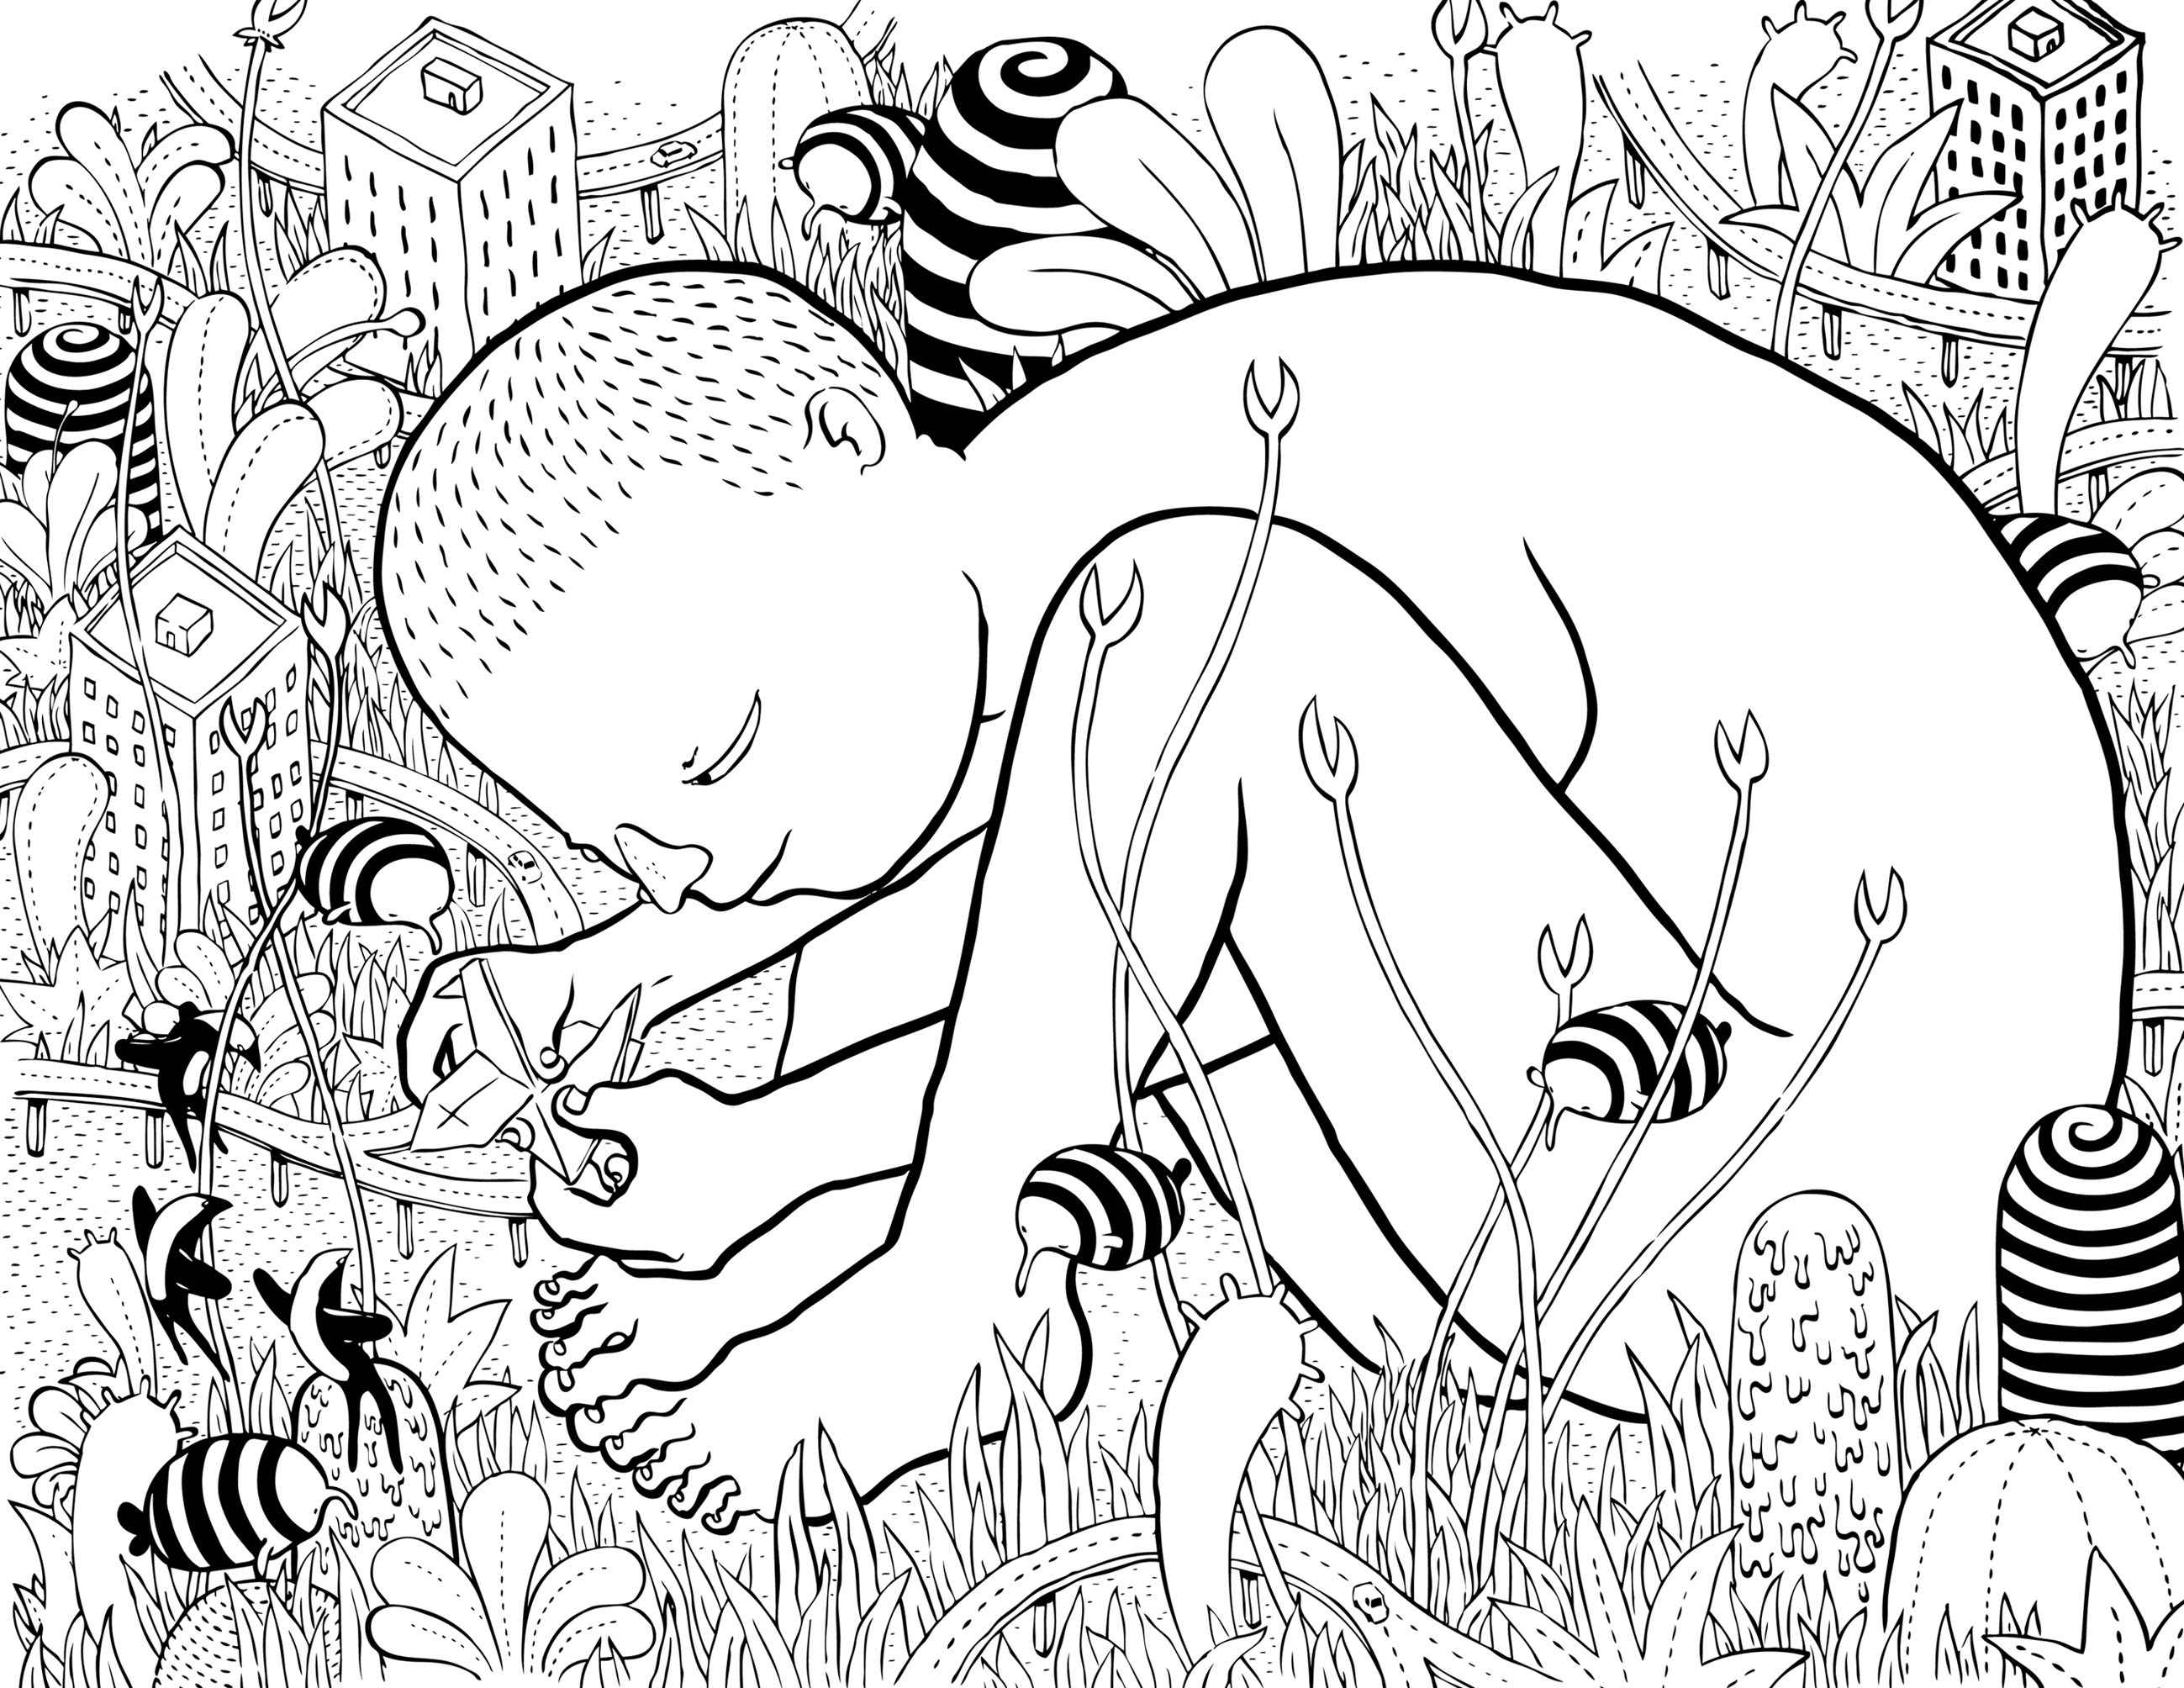 Untitled (1) Millo 2013